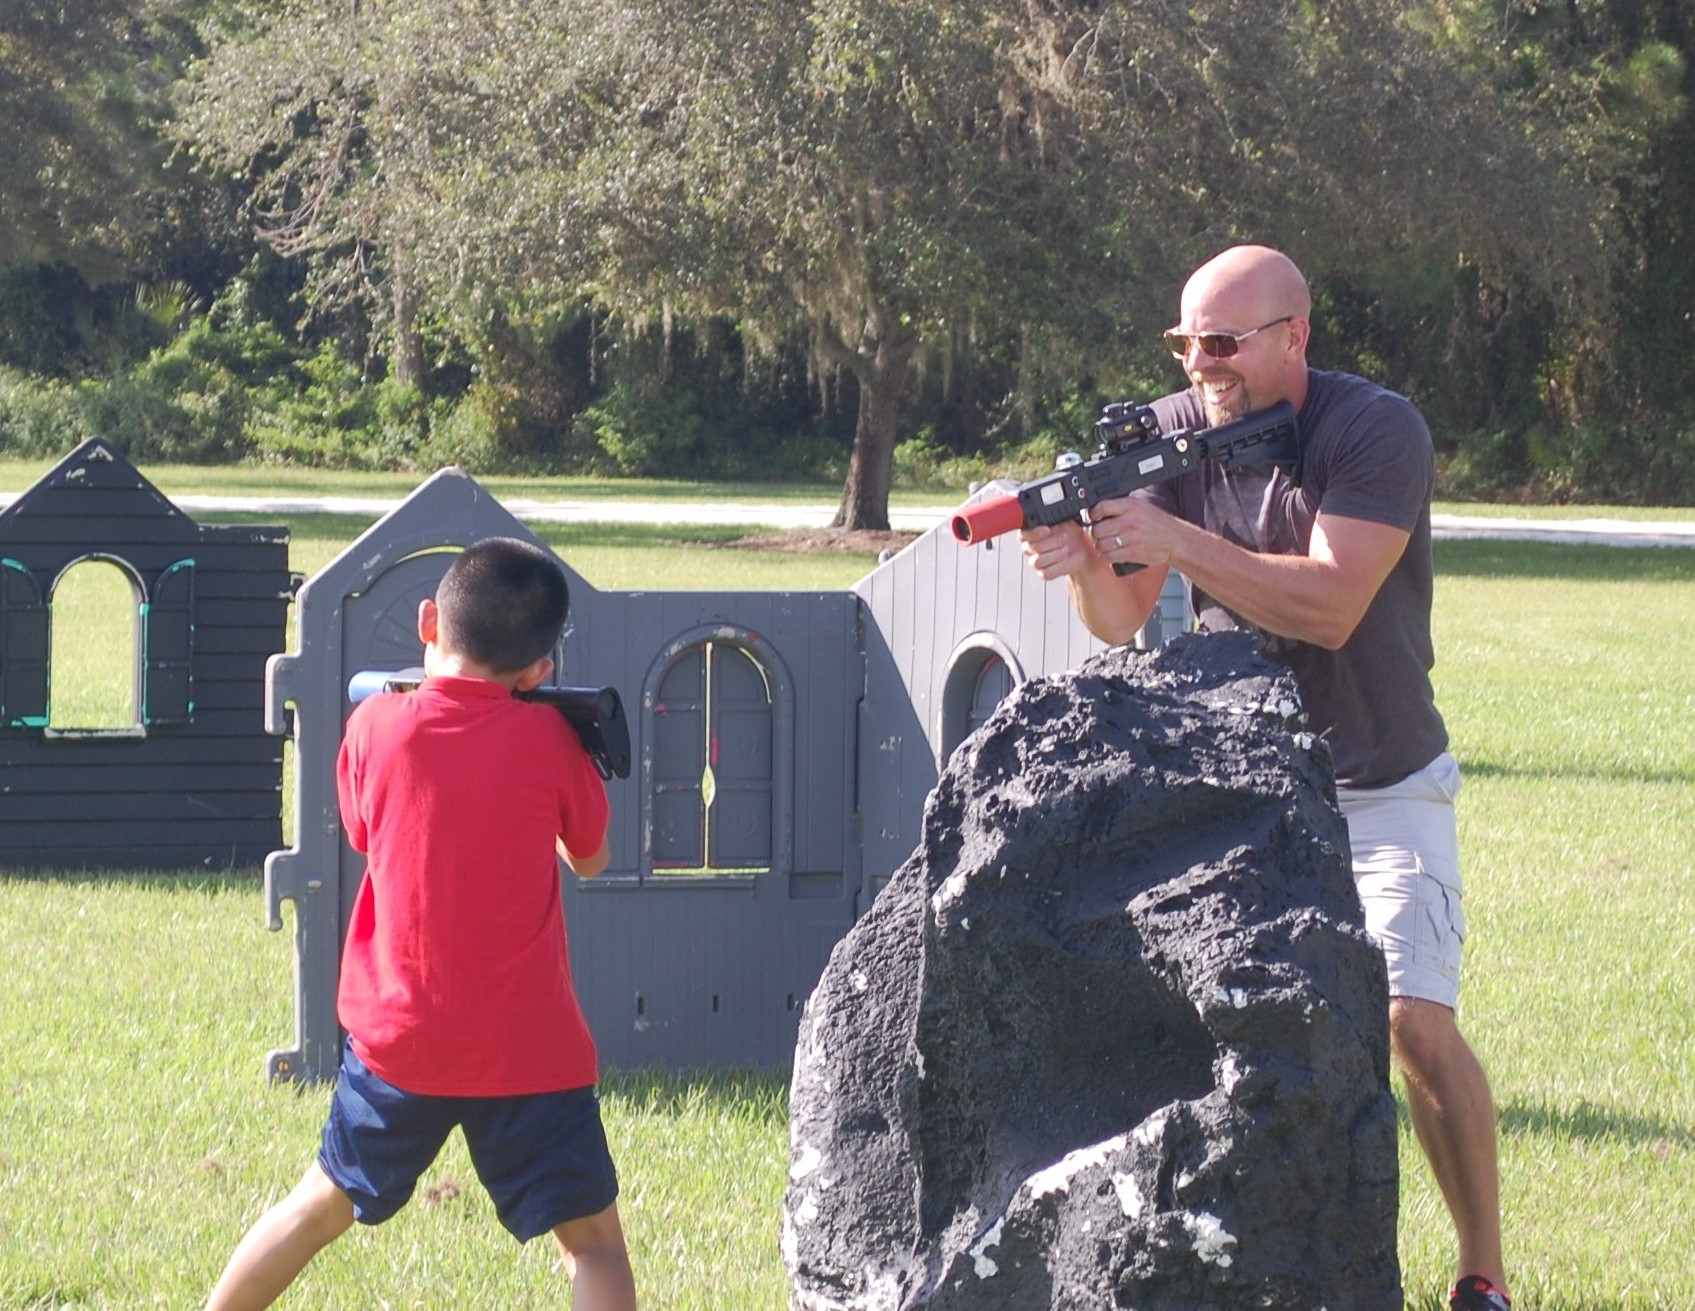 Laser Tag in Cape Coral,FL